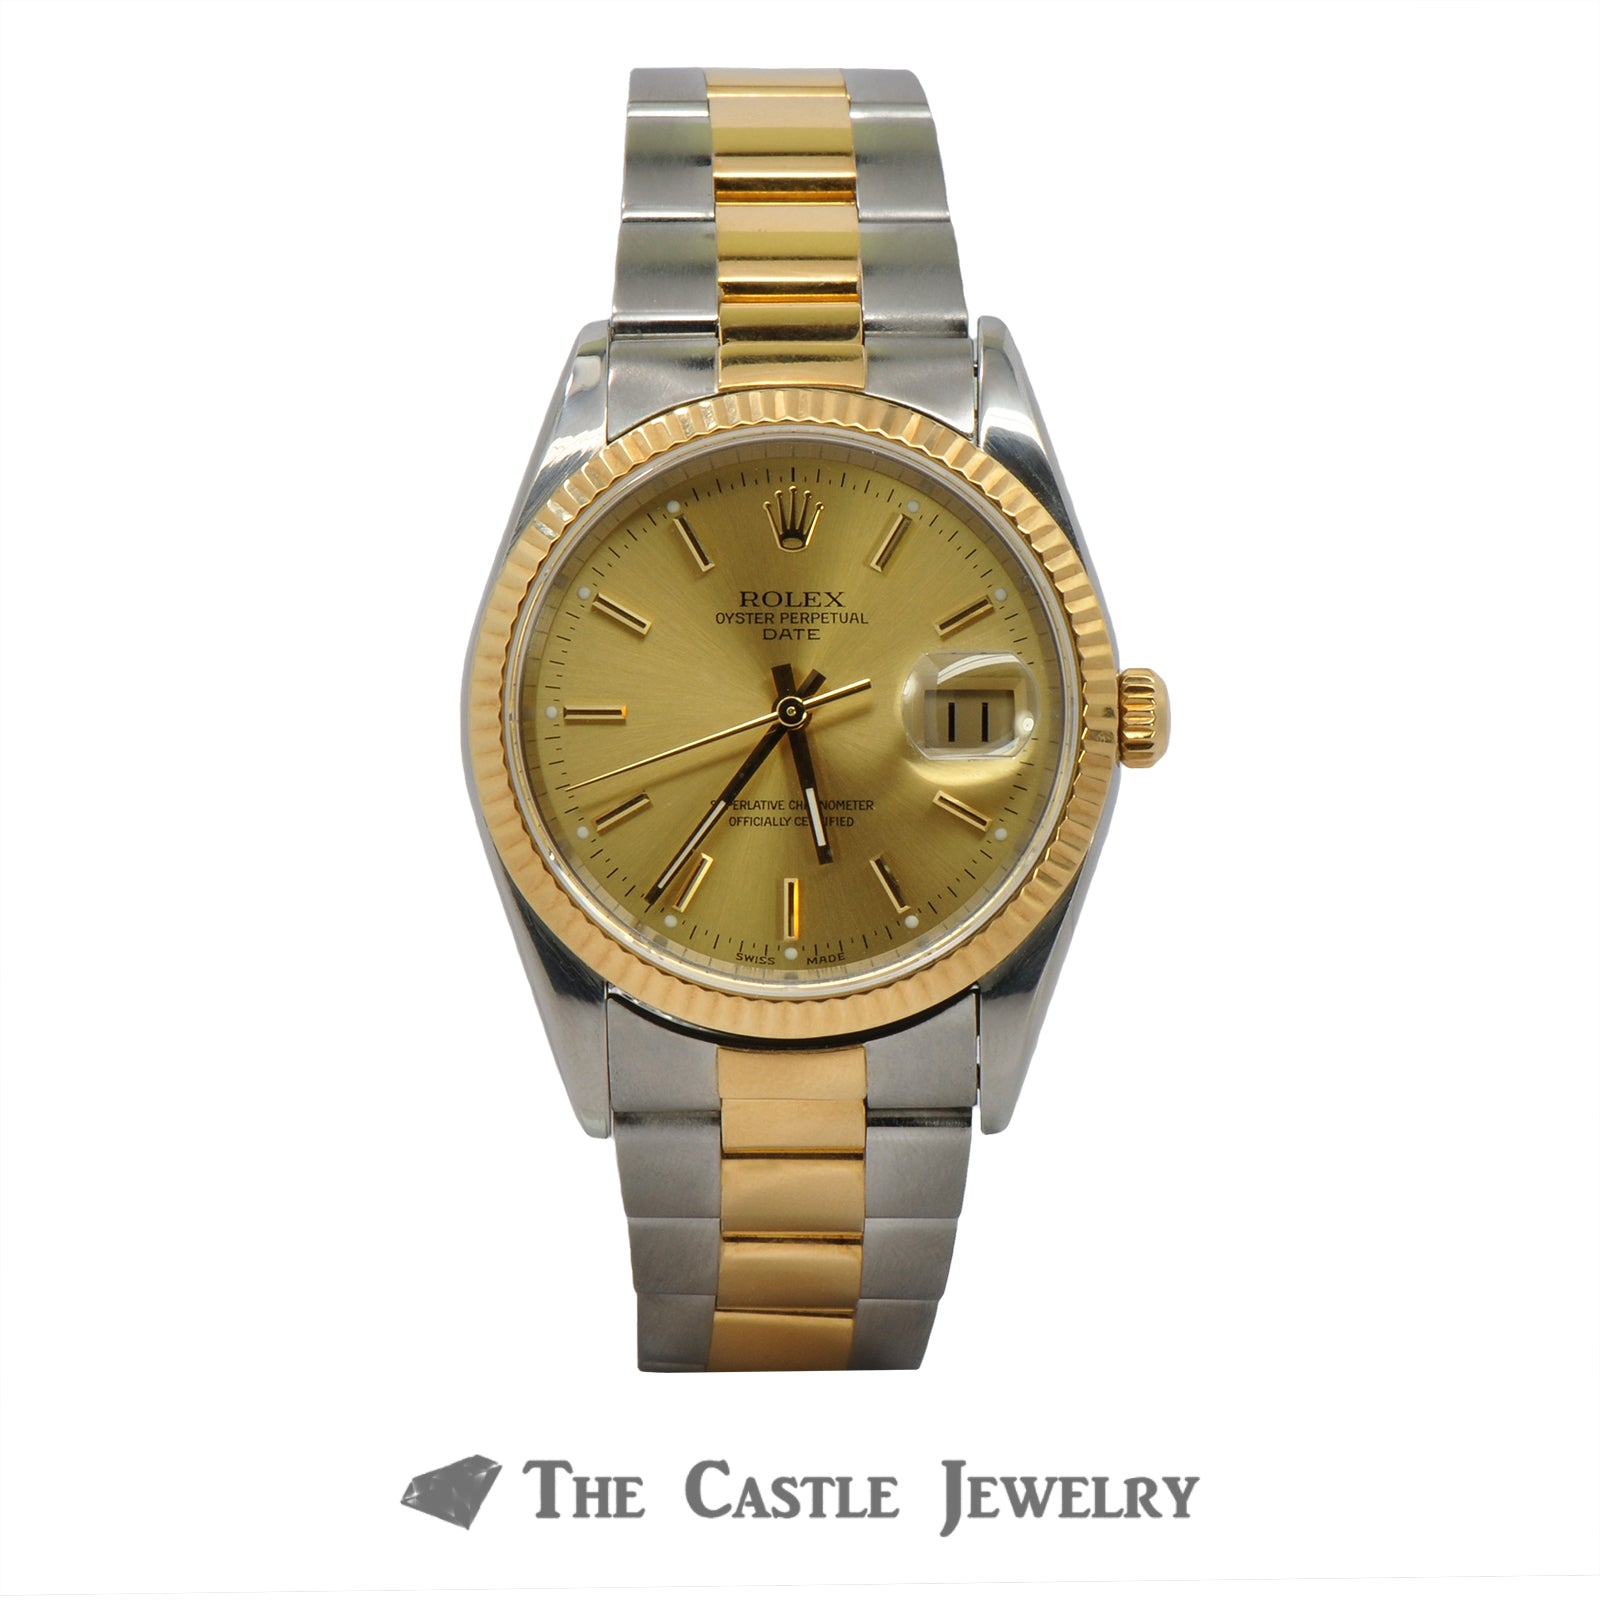 Rolex Date Model 15203 | 18K & Steel Oyster Bracelet | 2 Year Warranty